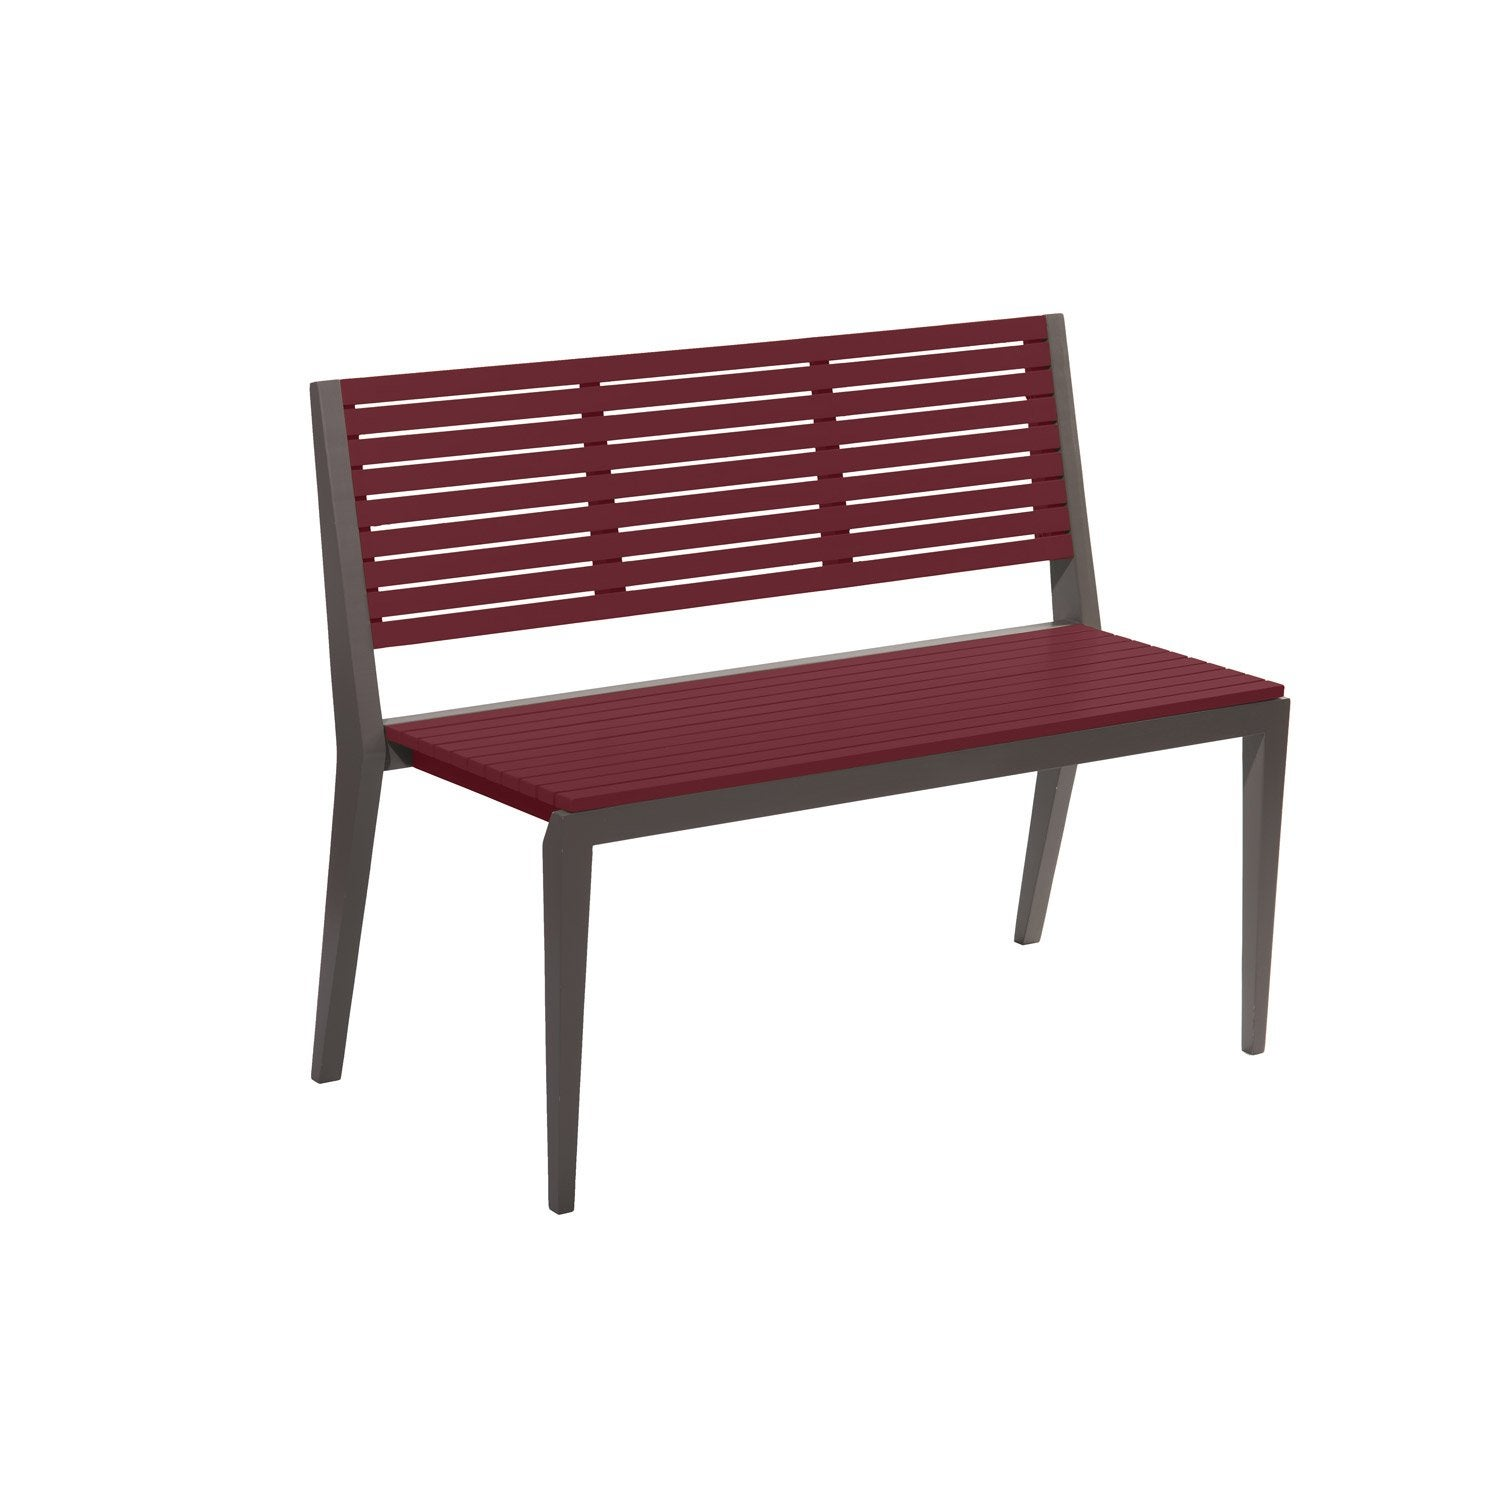 banc 3 places de jardin en bois portofino rouge basque leroy merlin. Black Bedroom Furniture Sets. Home Design Ideas